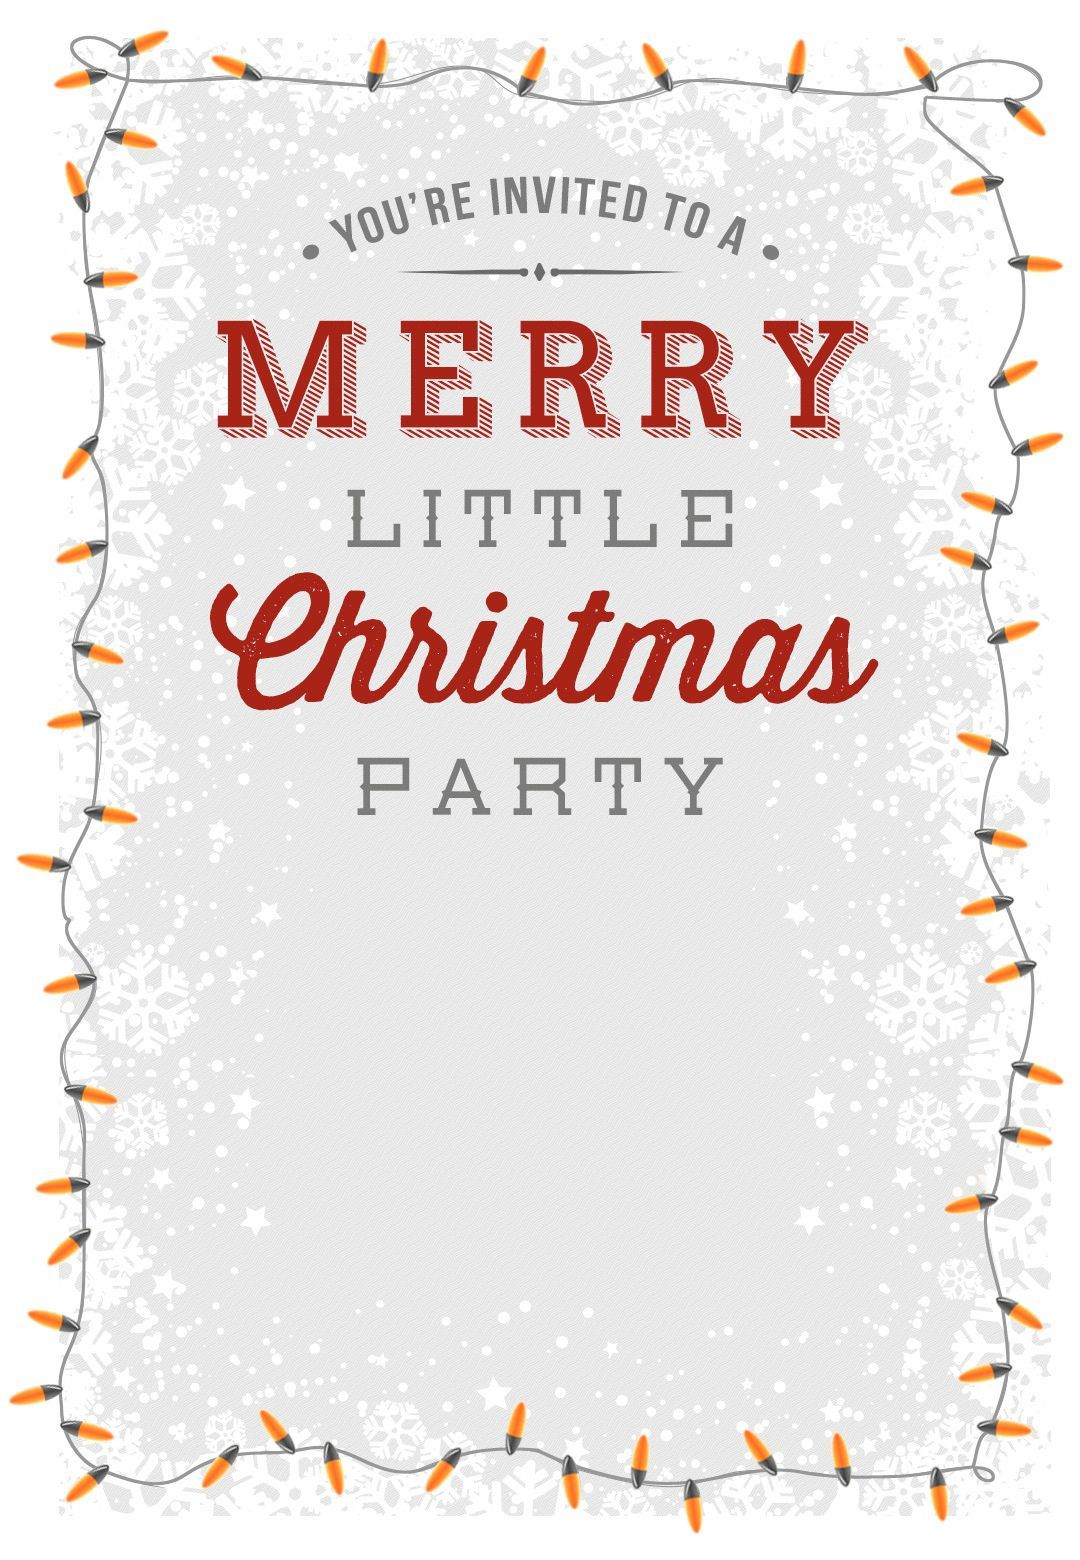 006 Formidable Xma Party Invite Template Free Example  Holiday Invitation Word Printable Office Christma DownloadFull